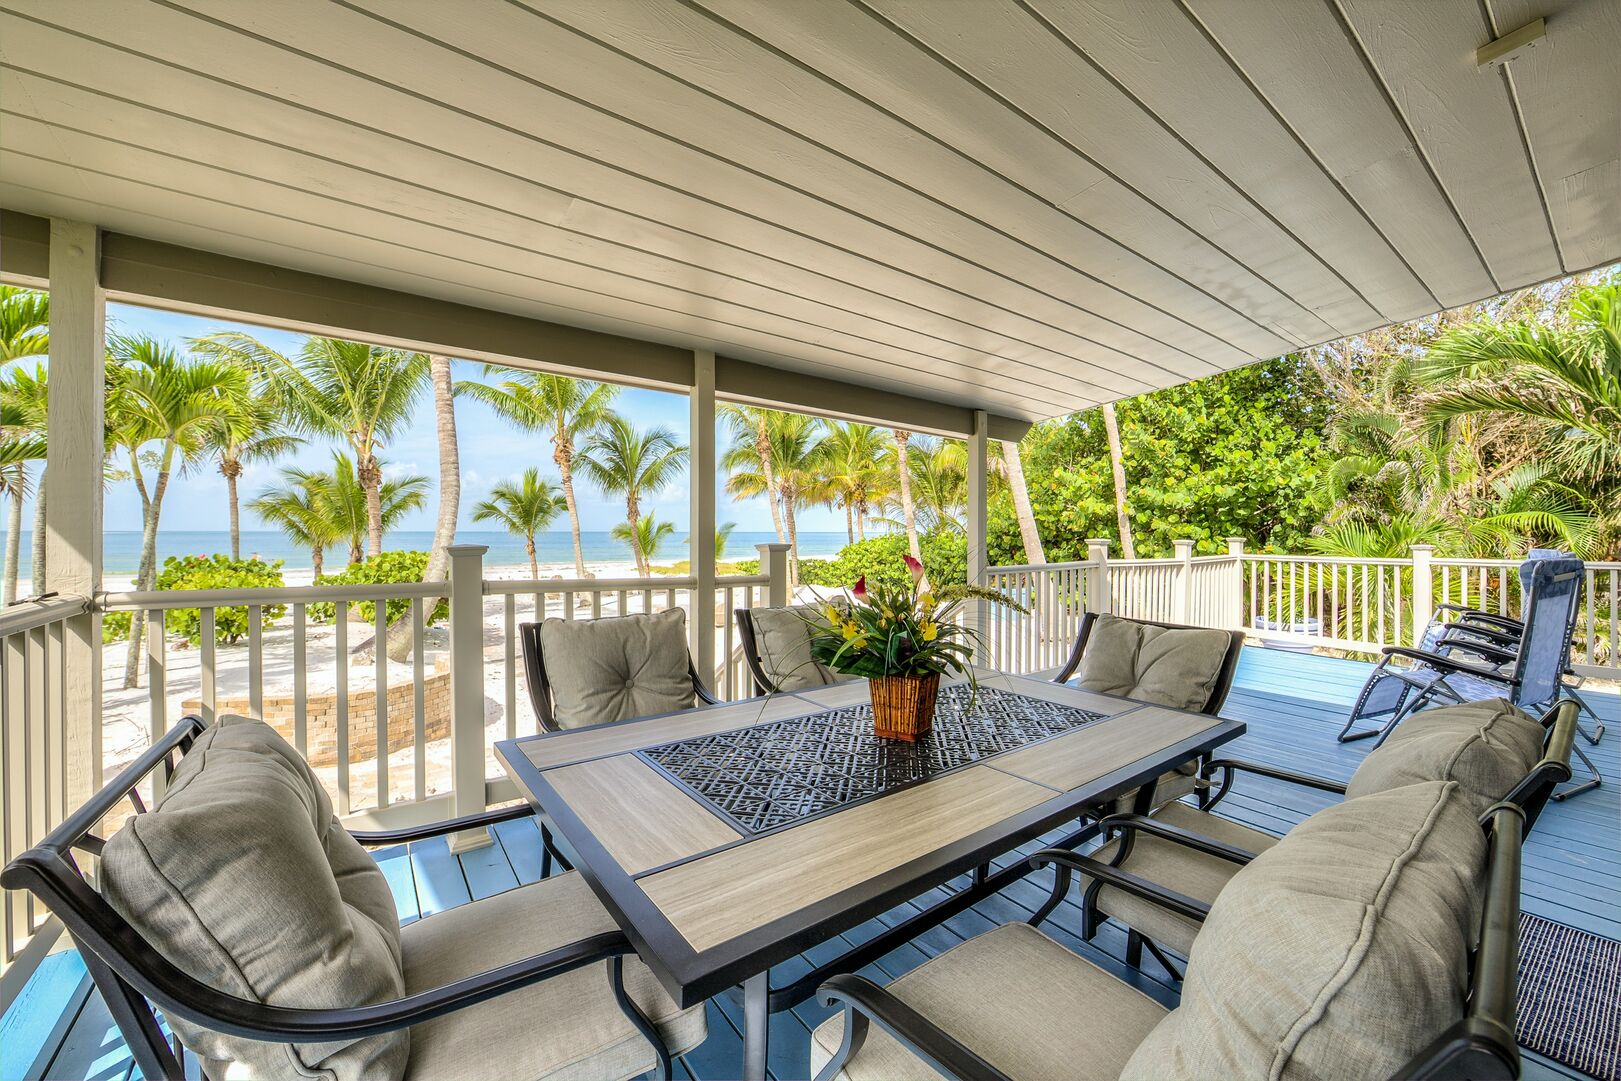 Outdoor Seating on Deck Private Beach House Rental in Florida